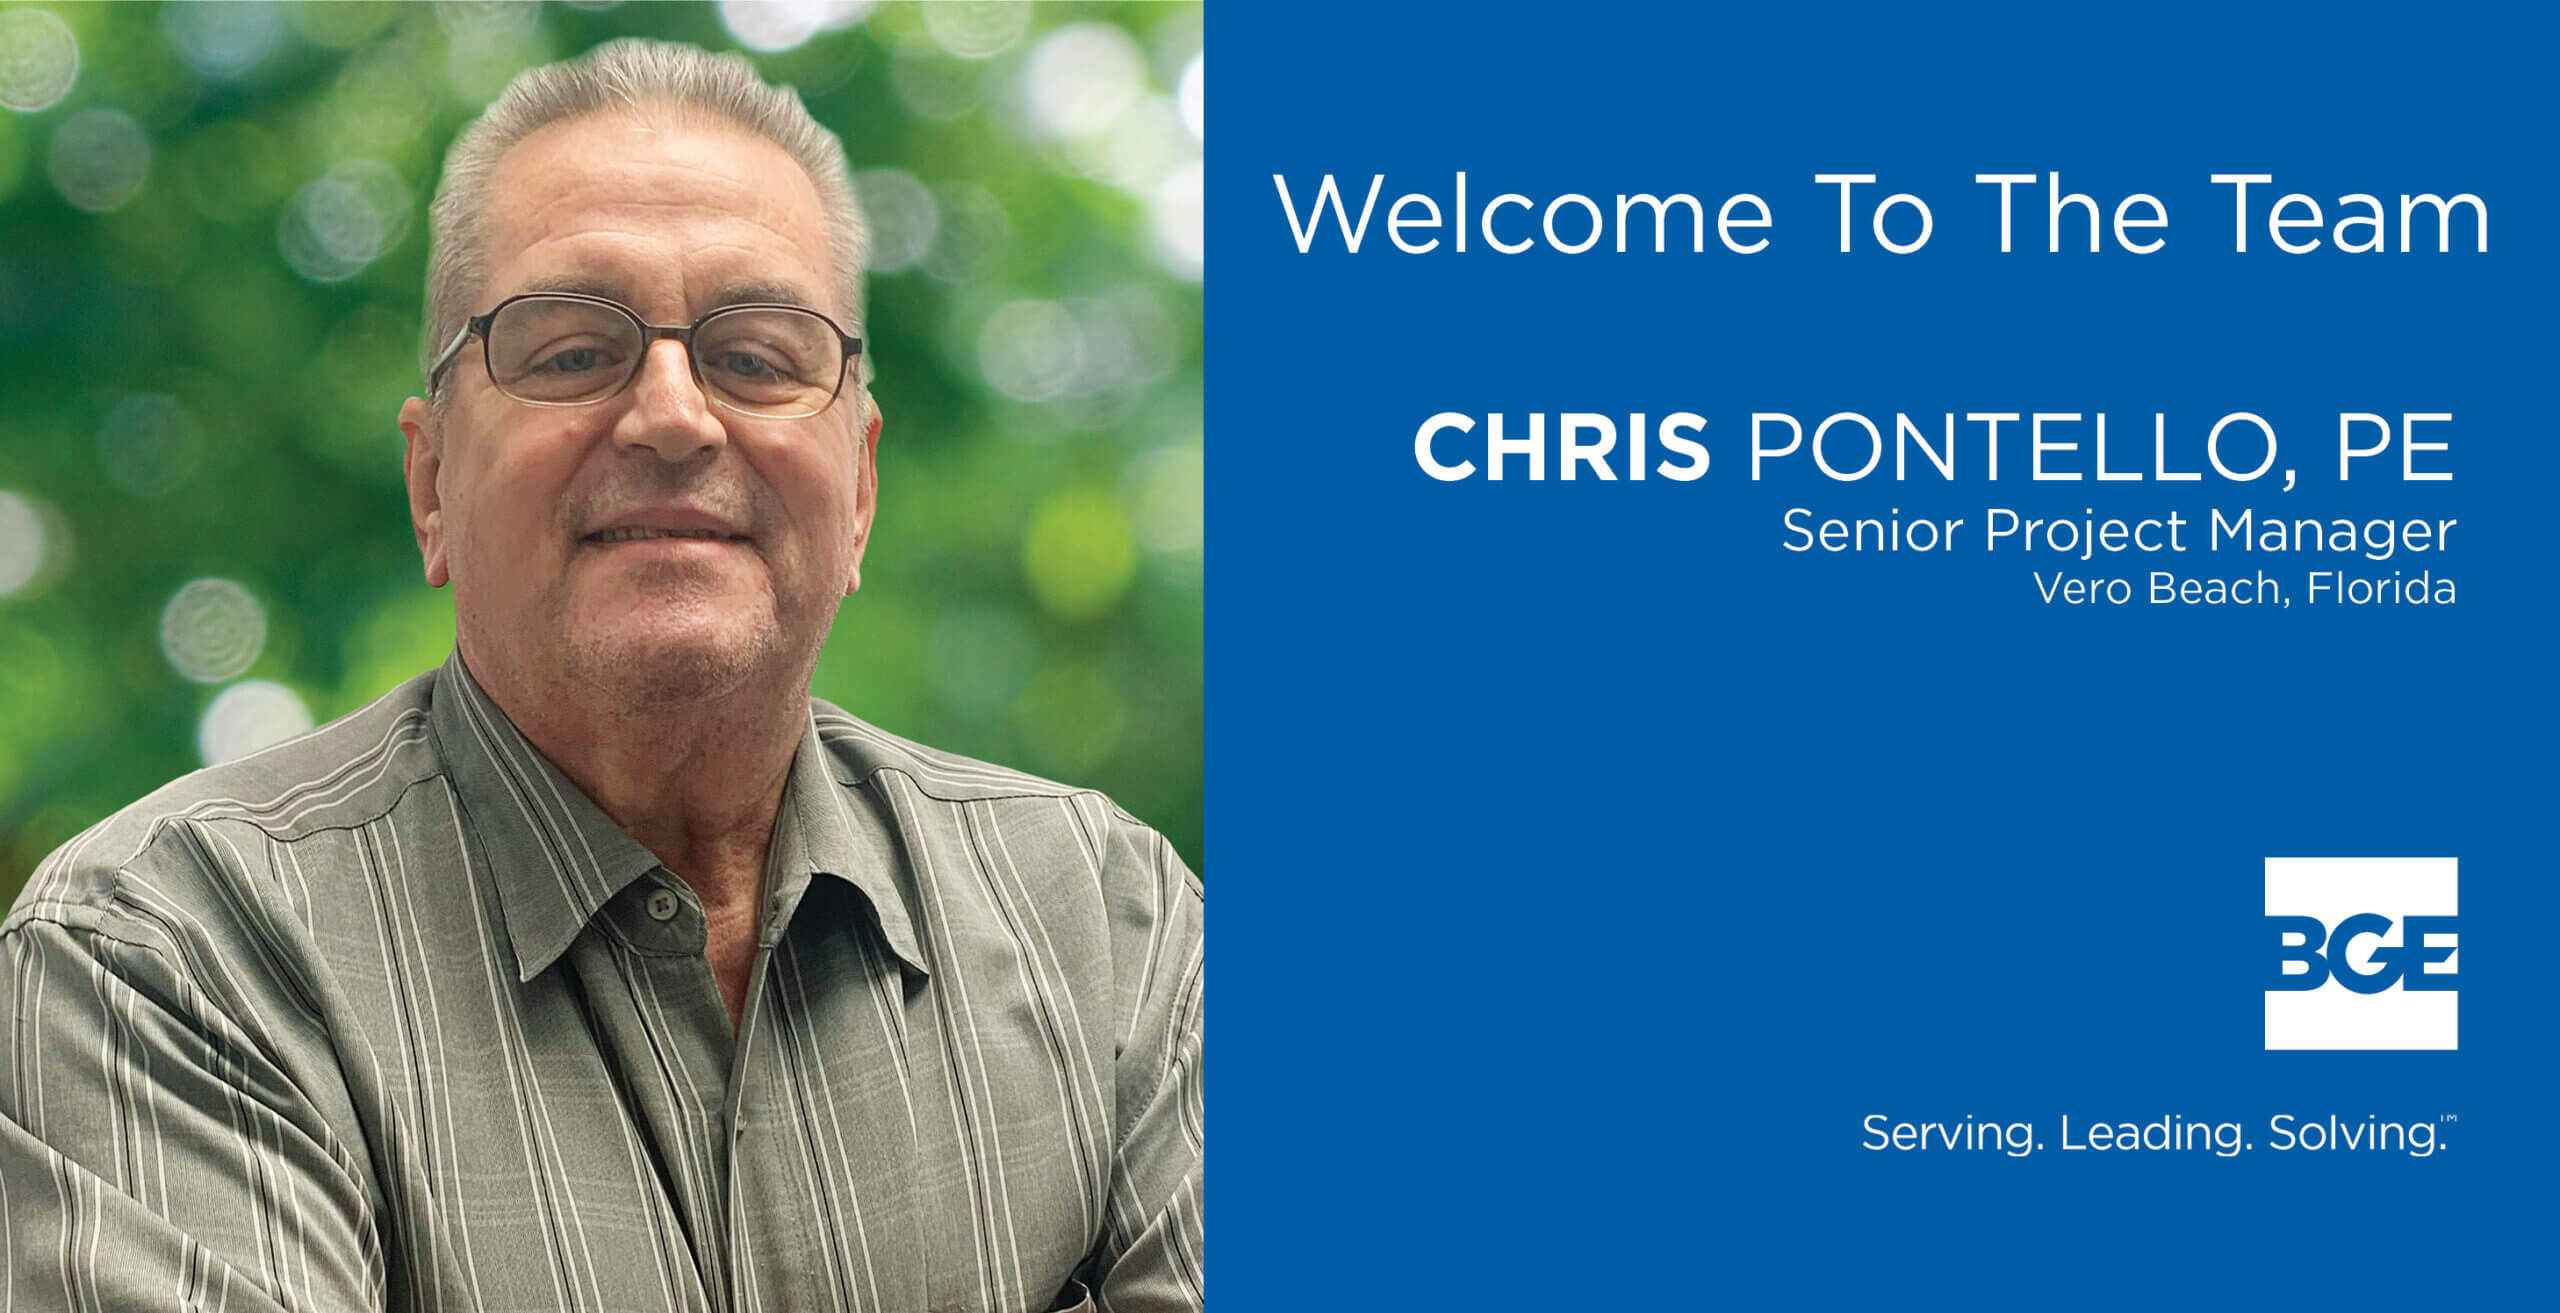 BGE Welcomes Chris Pontello to Its Vero Beach Office